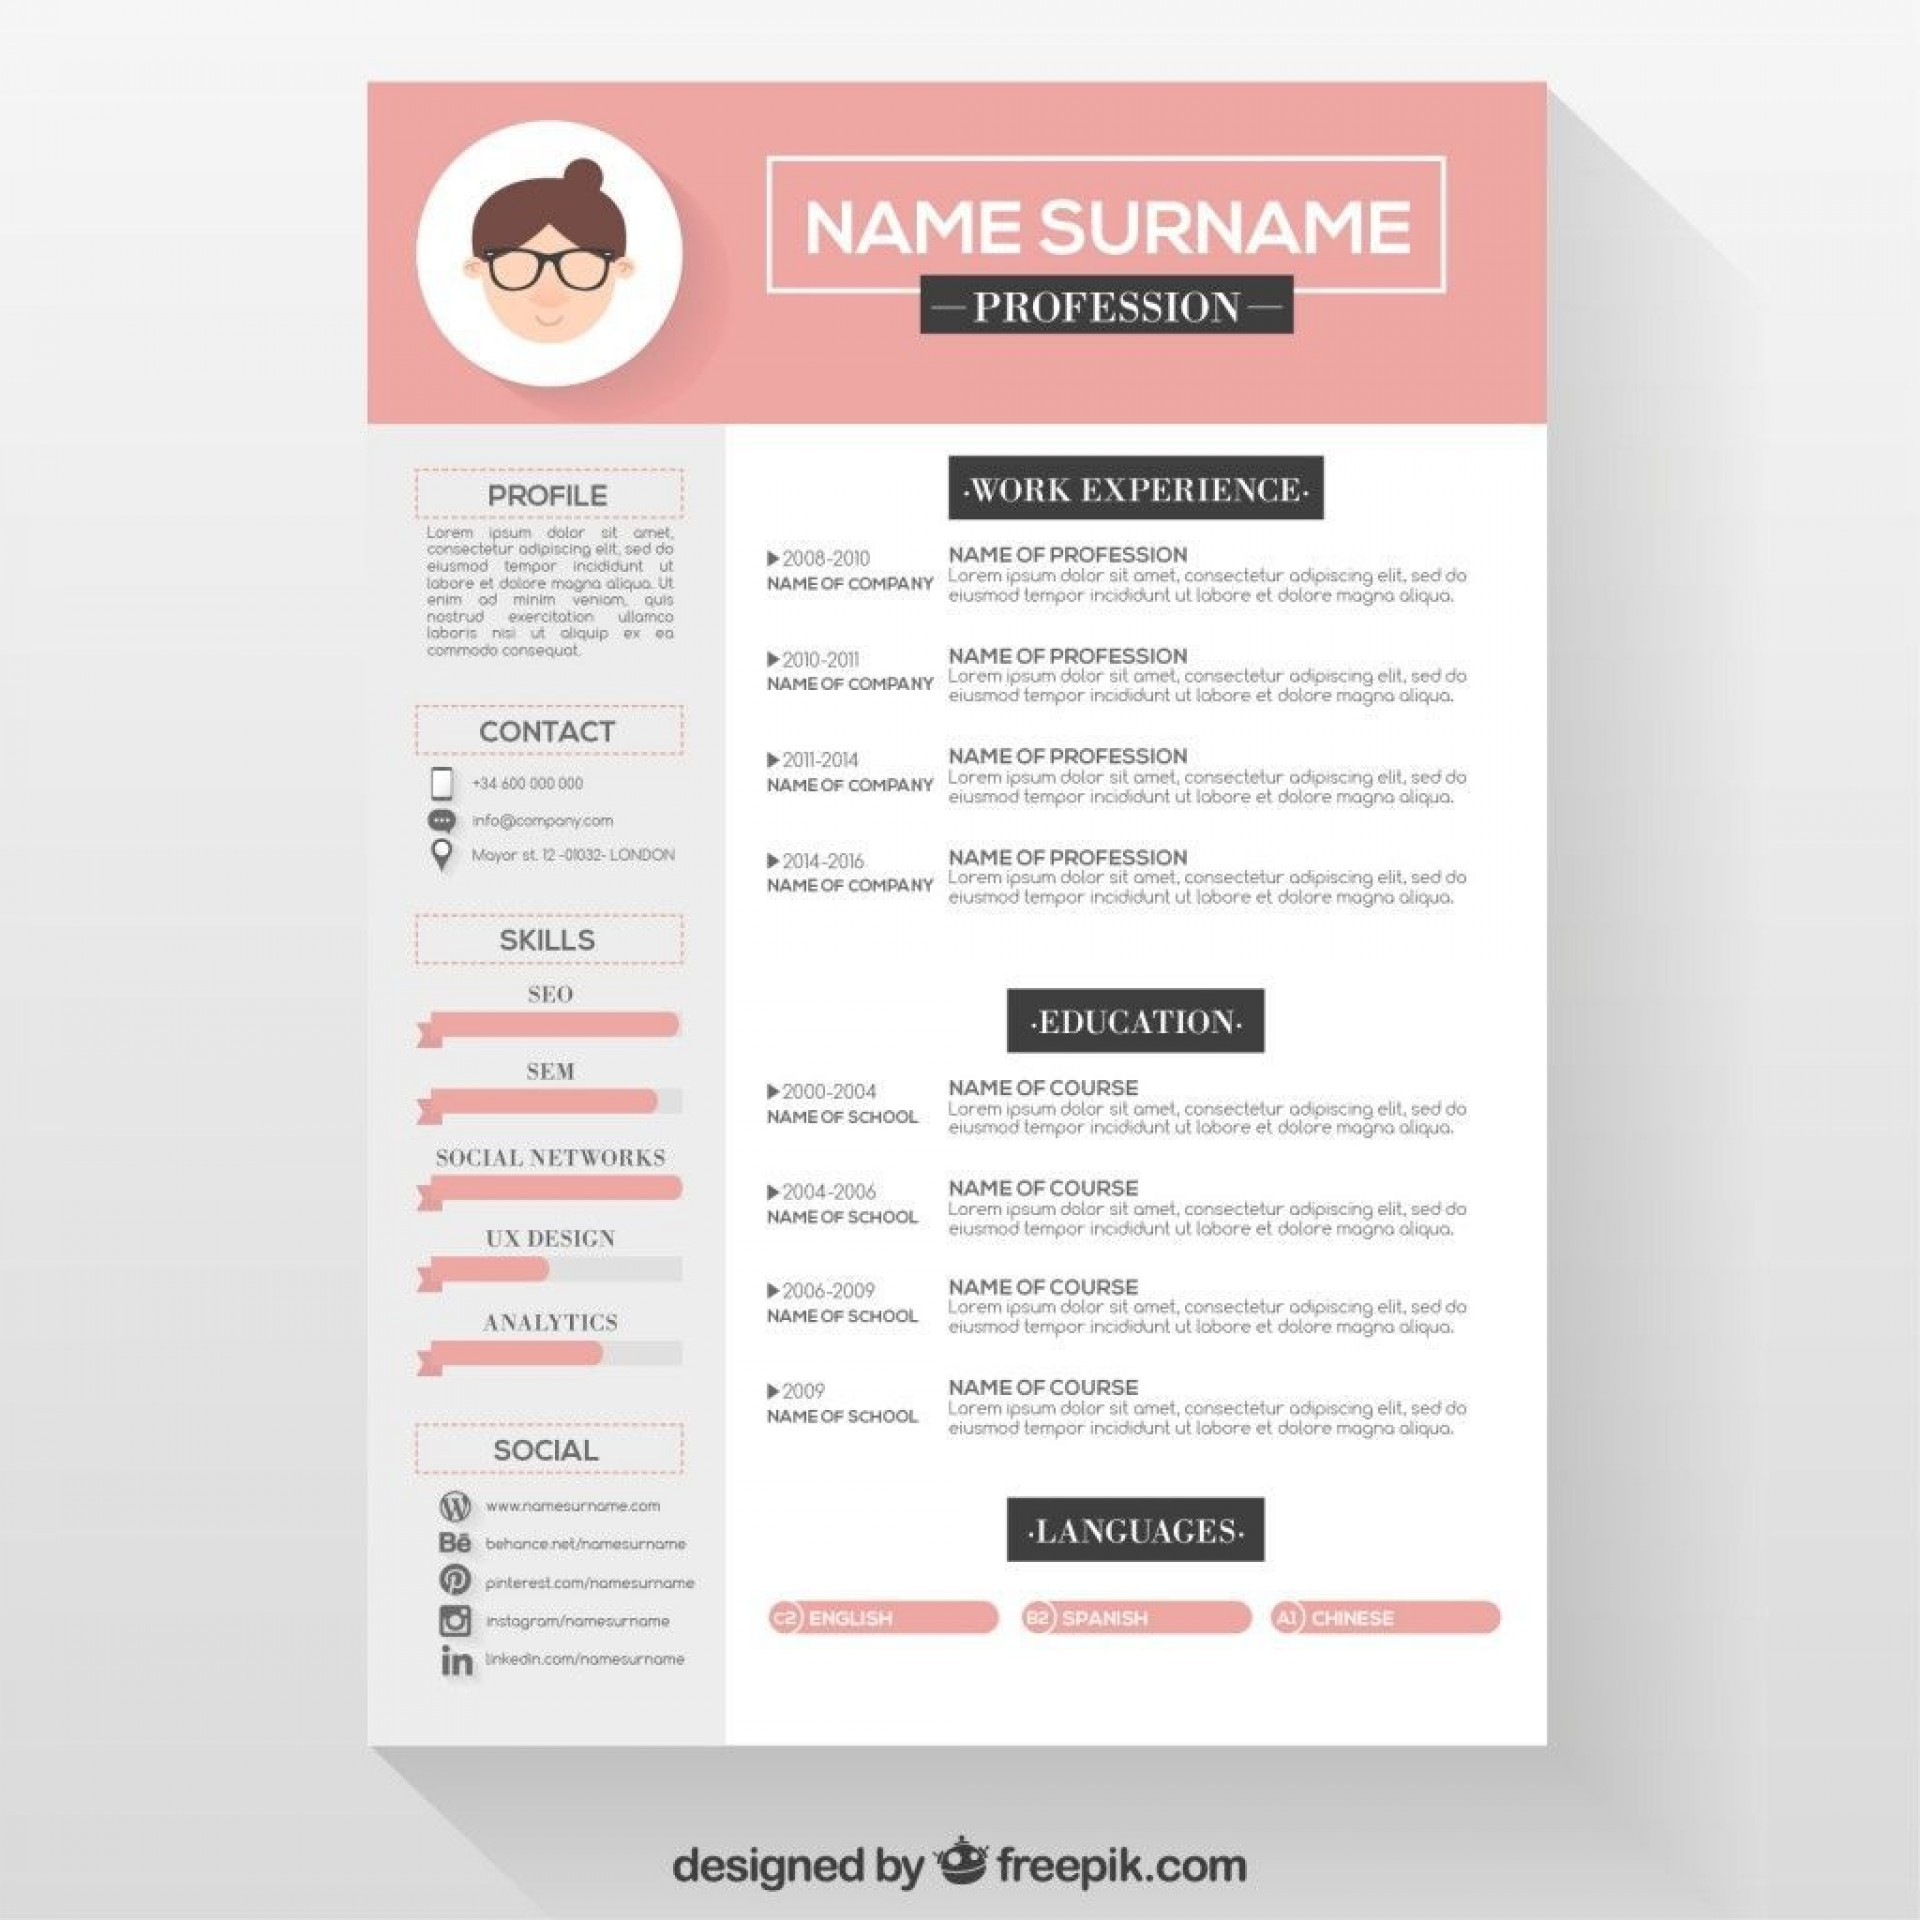 001 Awful Unique Resume Template Free High Def  Cool Download Creative Pdf Awesome1920